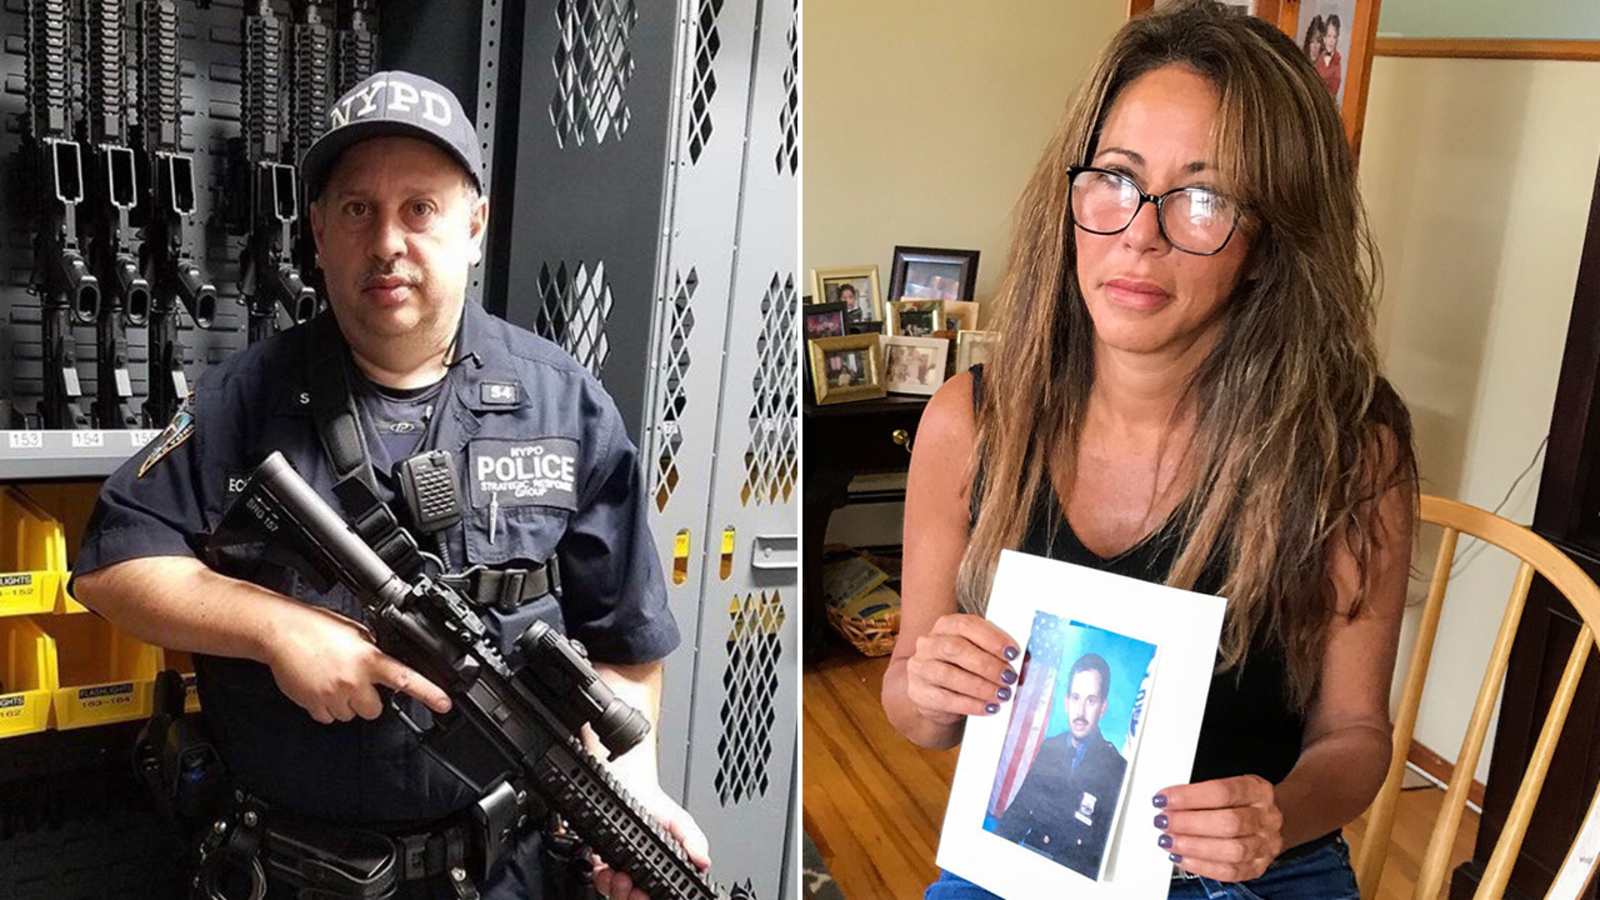 Sister of officer who died by suicide Wednesday says NYPD is 'broken'